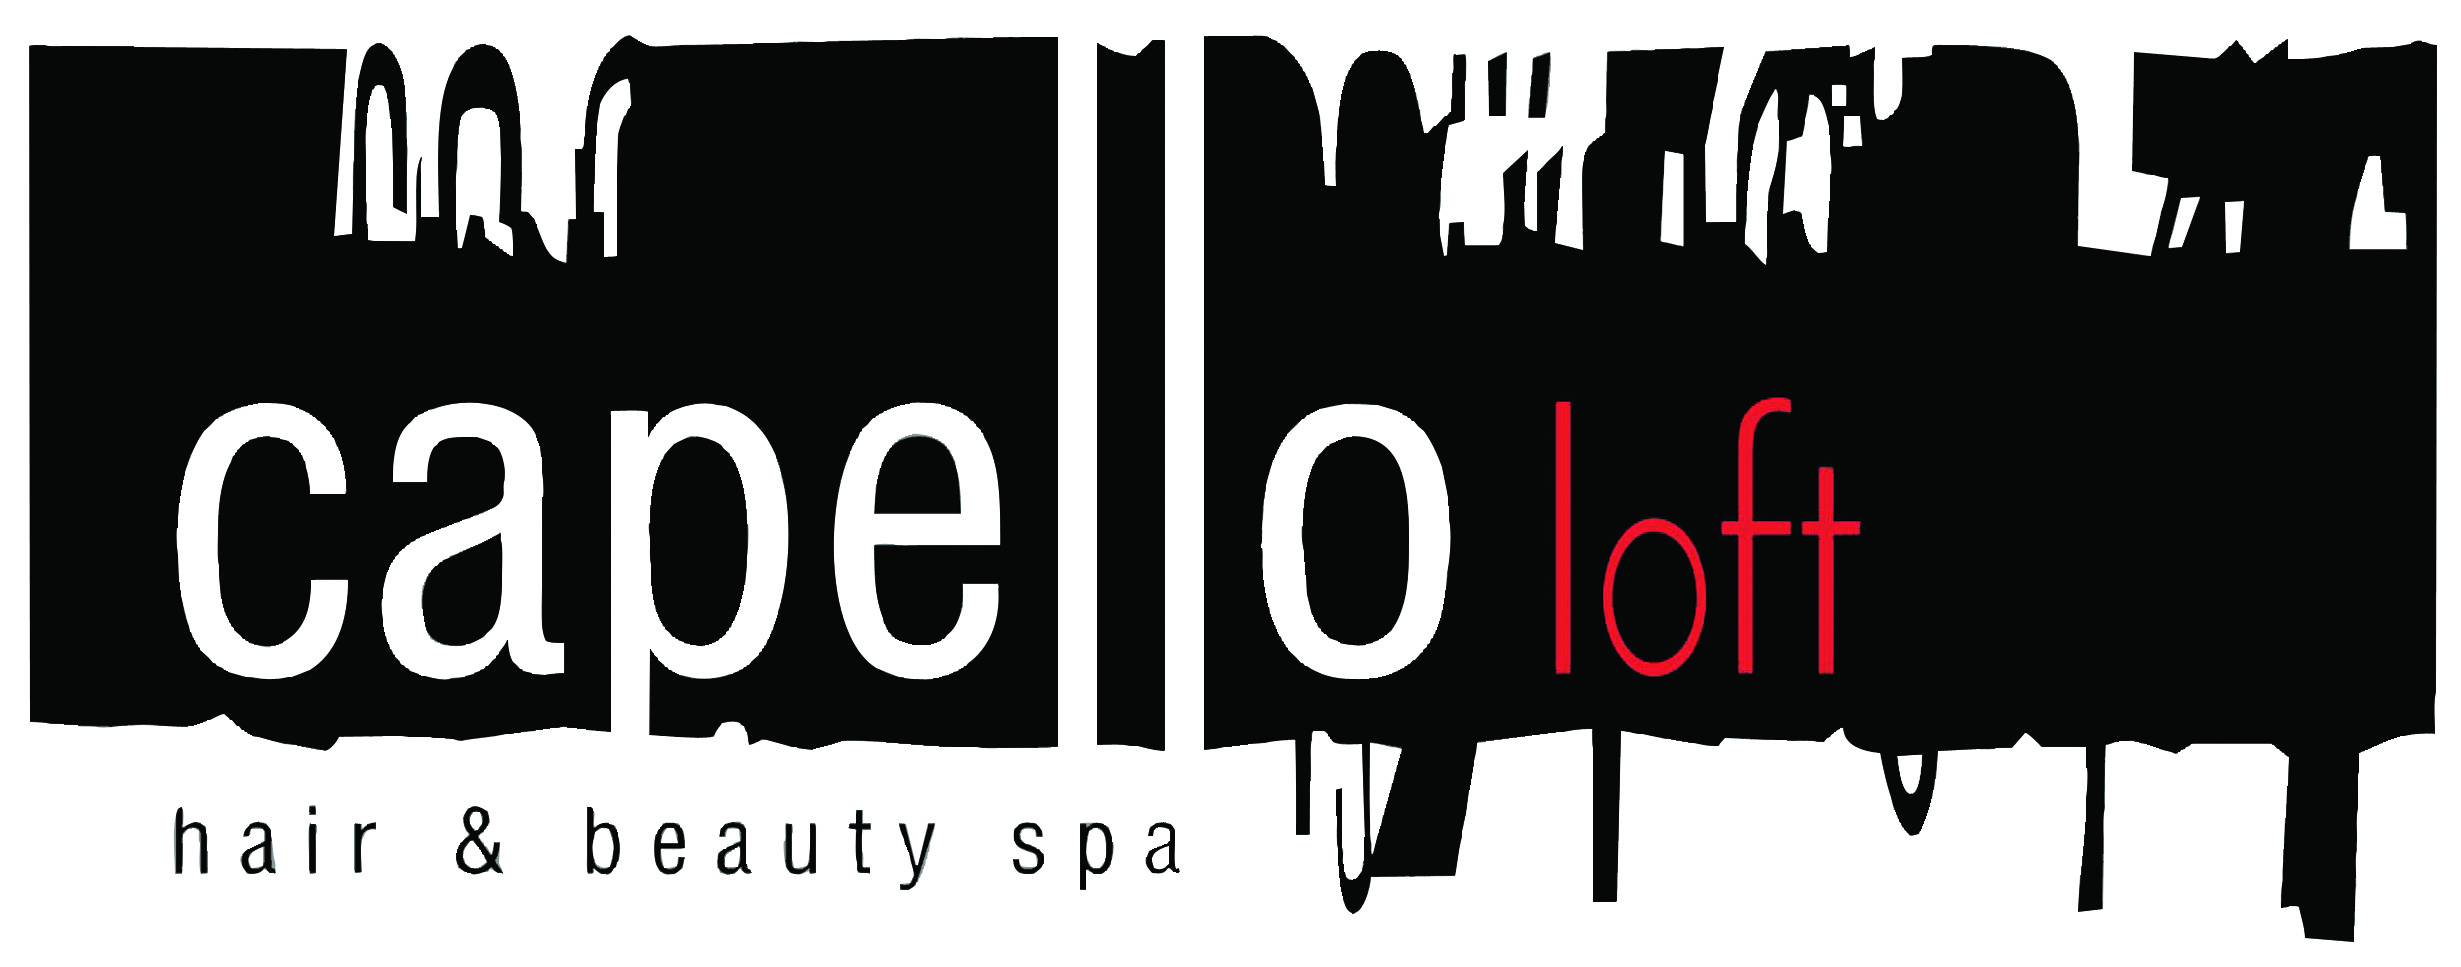 Capello Salon